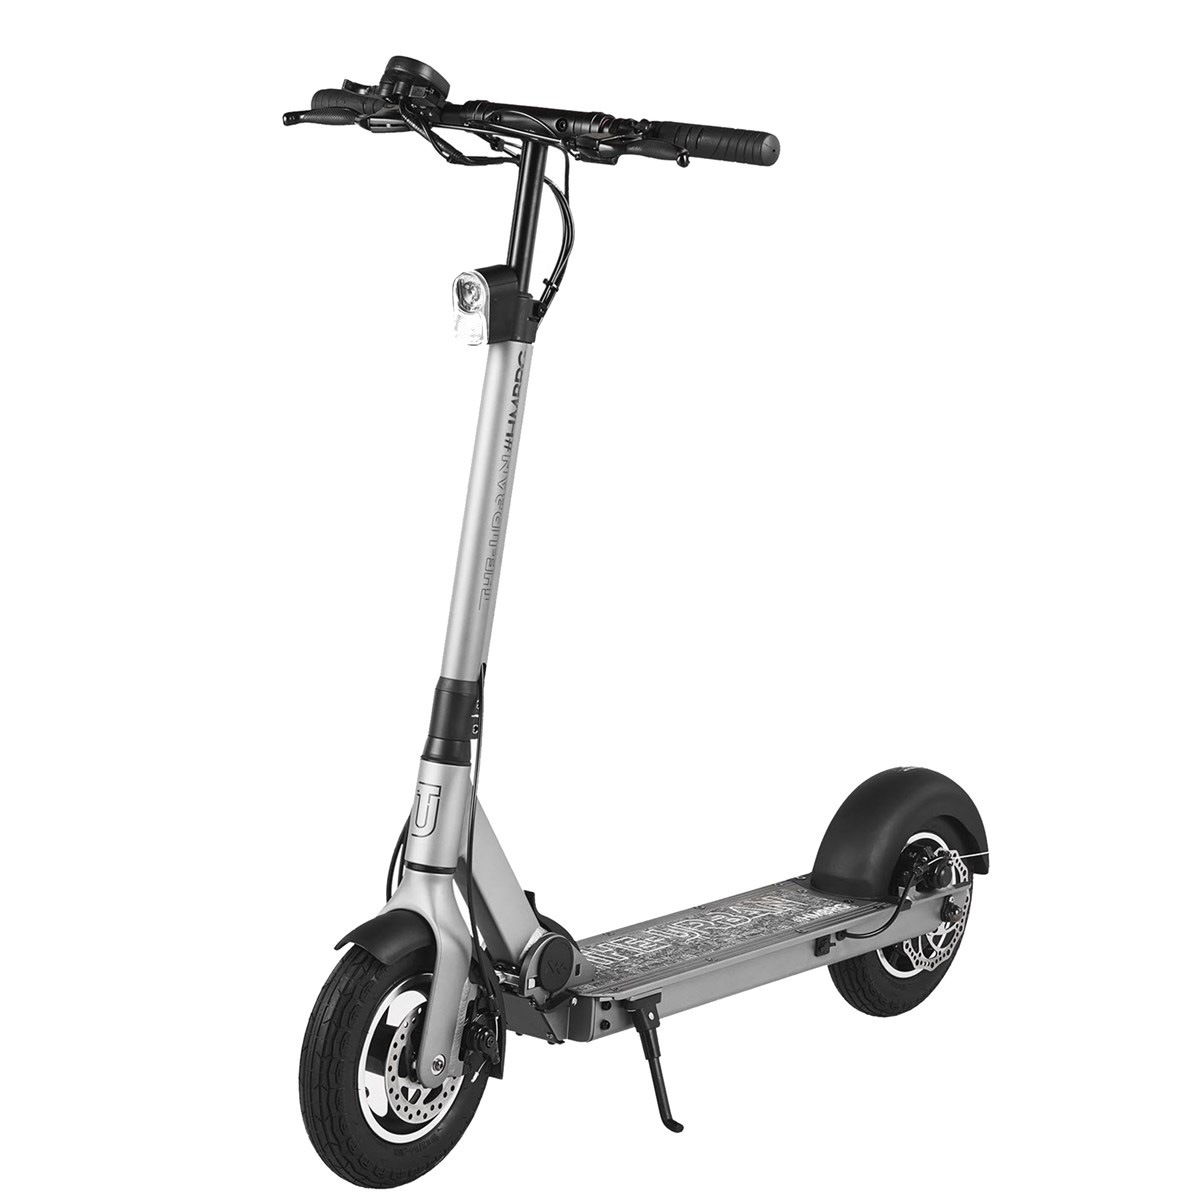 Walberg The Urban #HMBRG V2 Electric Scooter